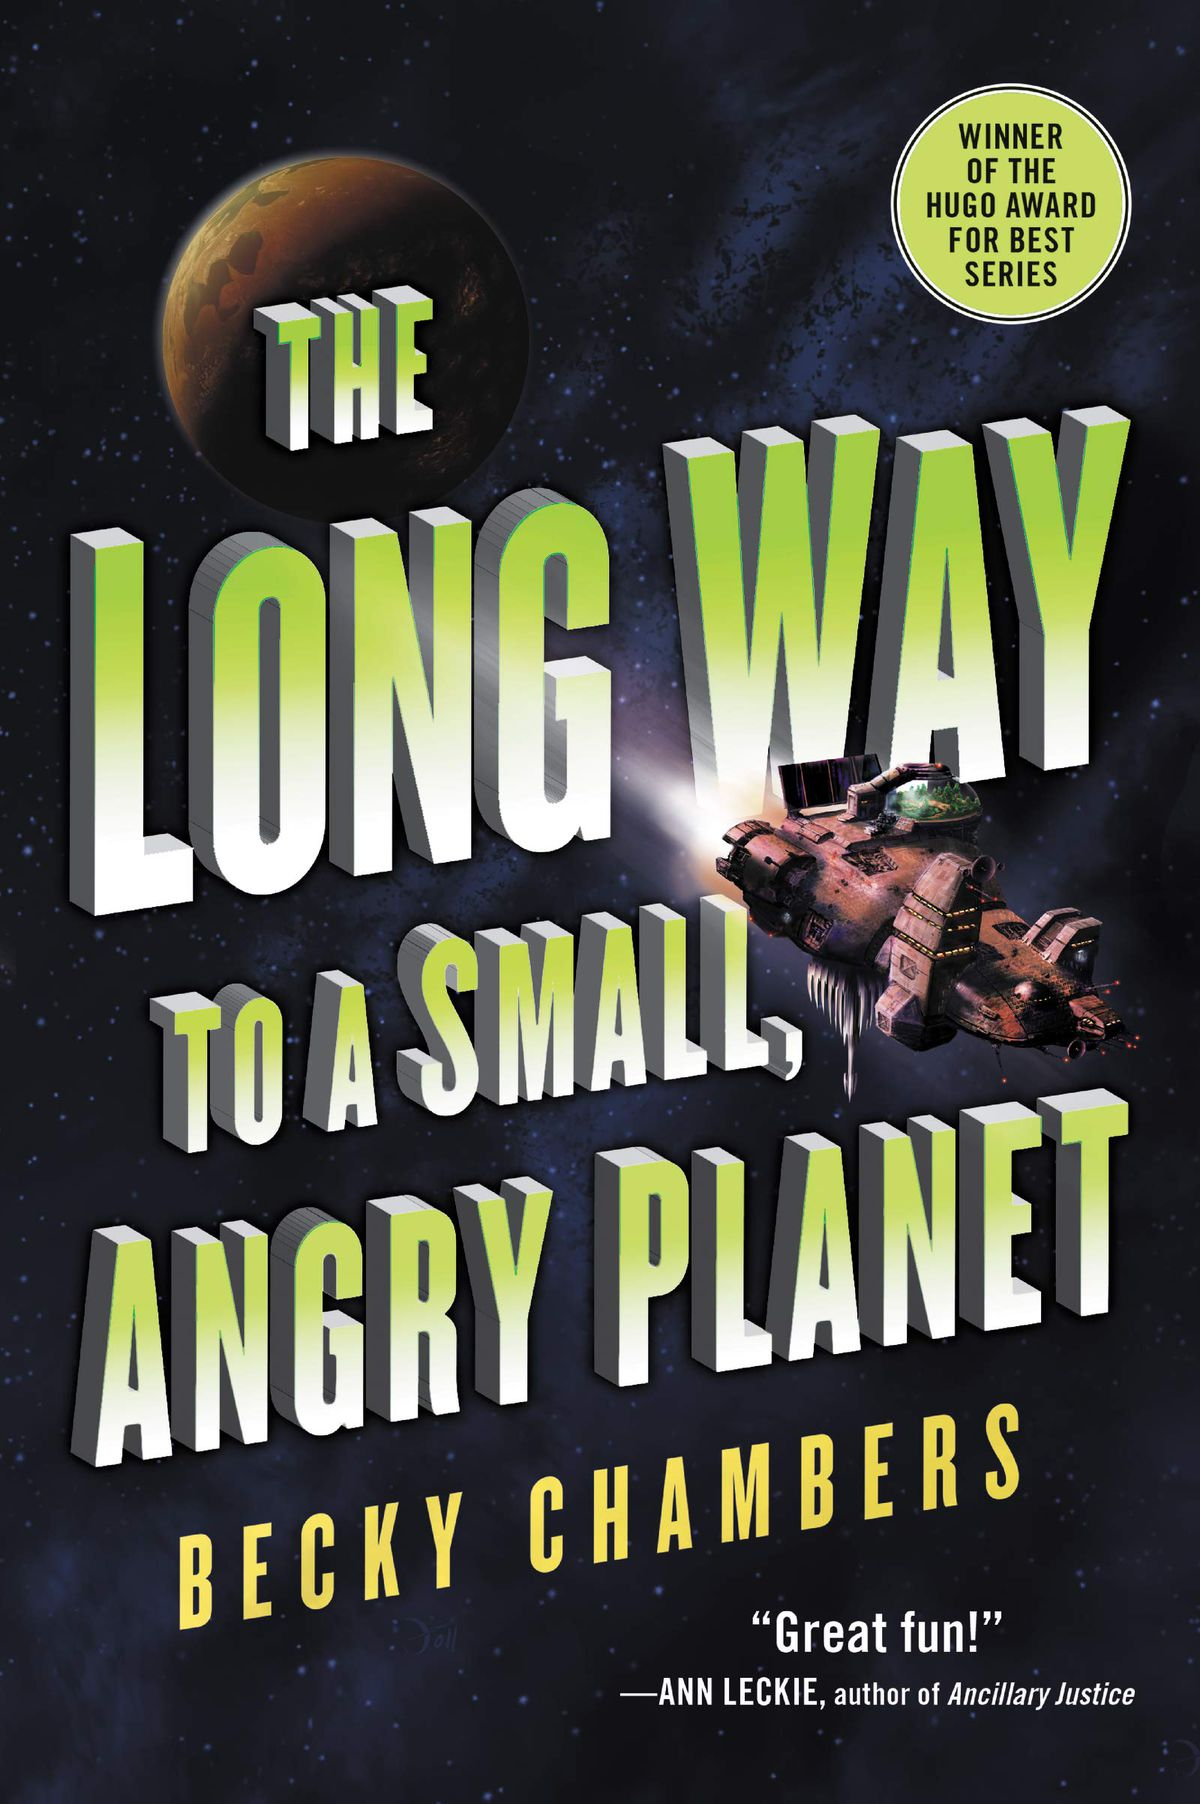 The cover of Becky Chambers's first book features large type, alongside a small spaceship and planet.